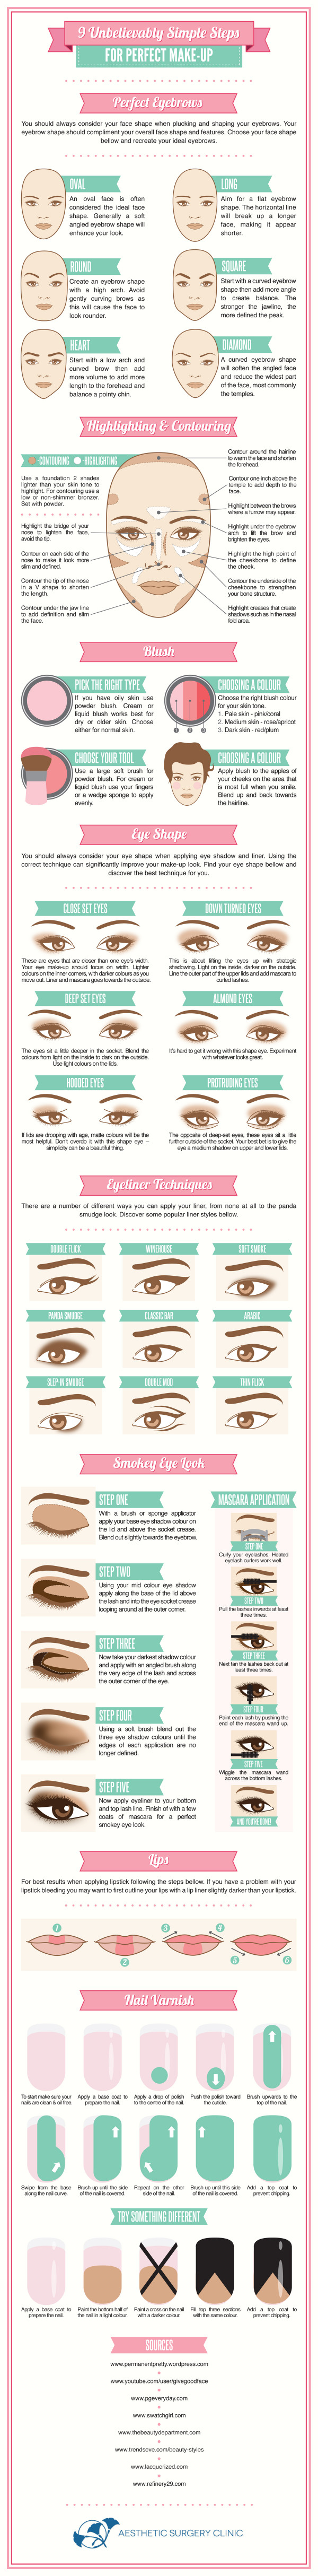 9 Unbelievably Simple Steps For Perfect Make-Up